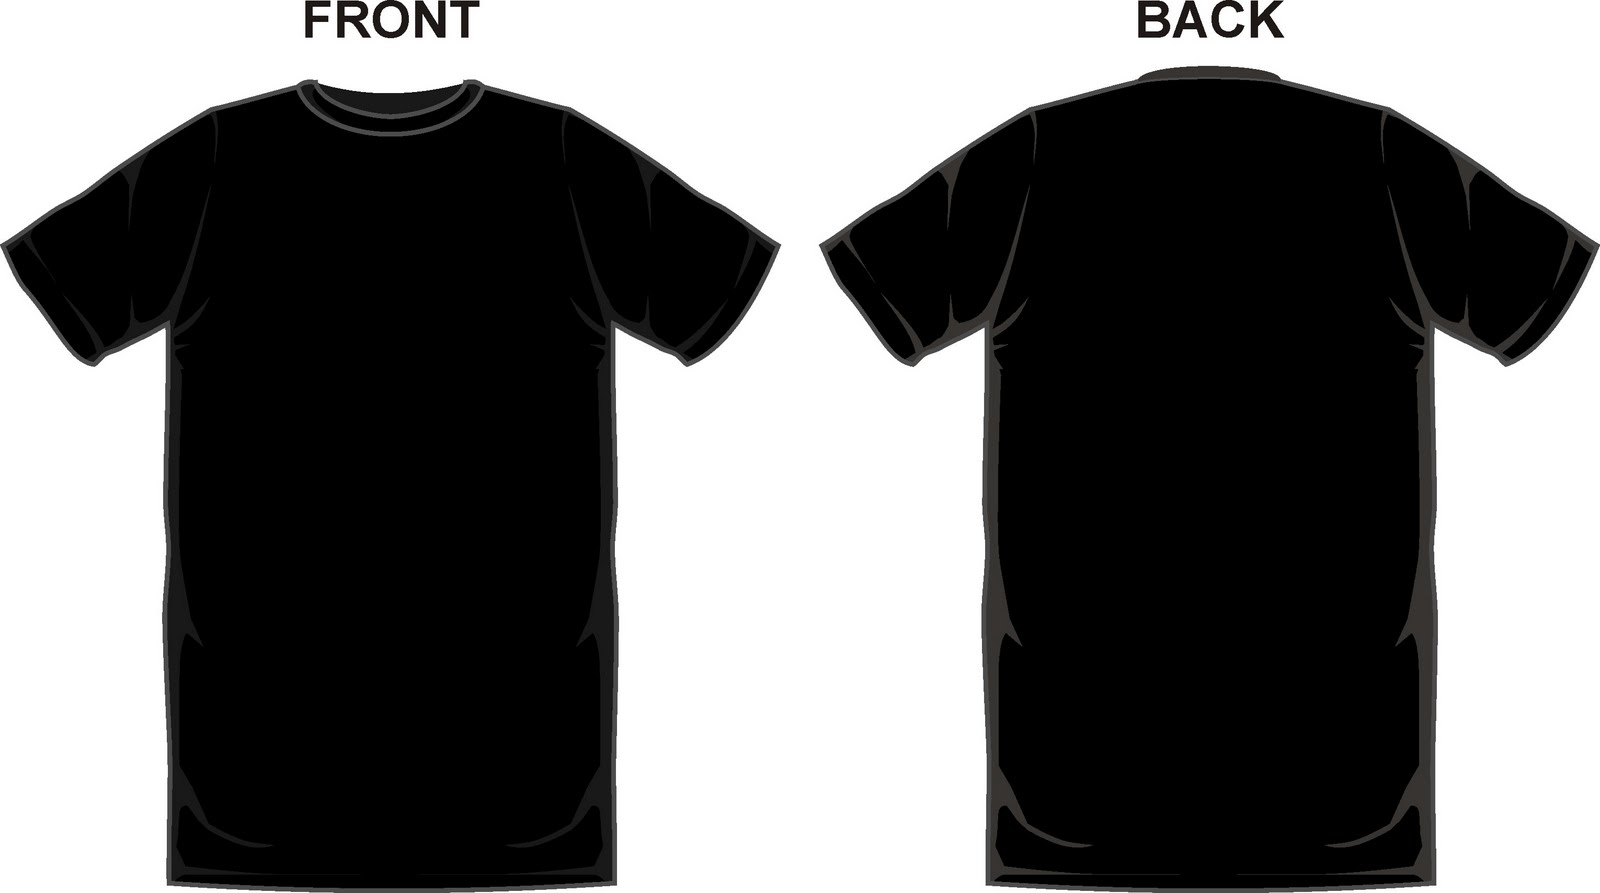 15 PSD T-Shirt Template Front And Back Images